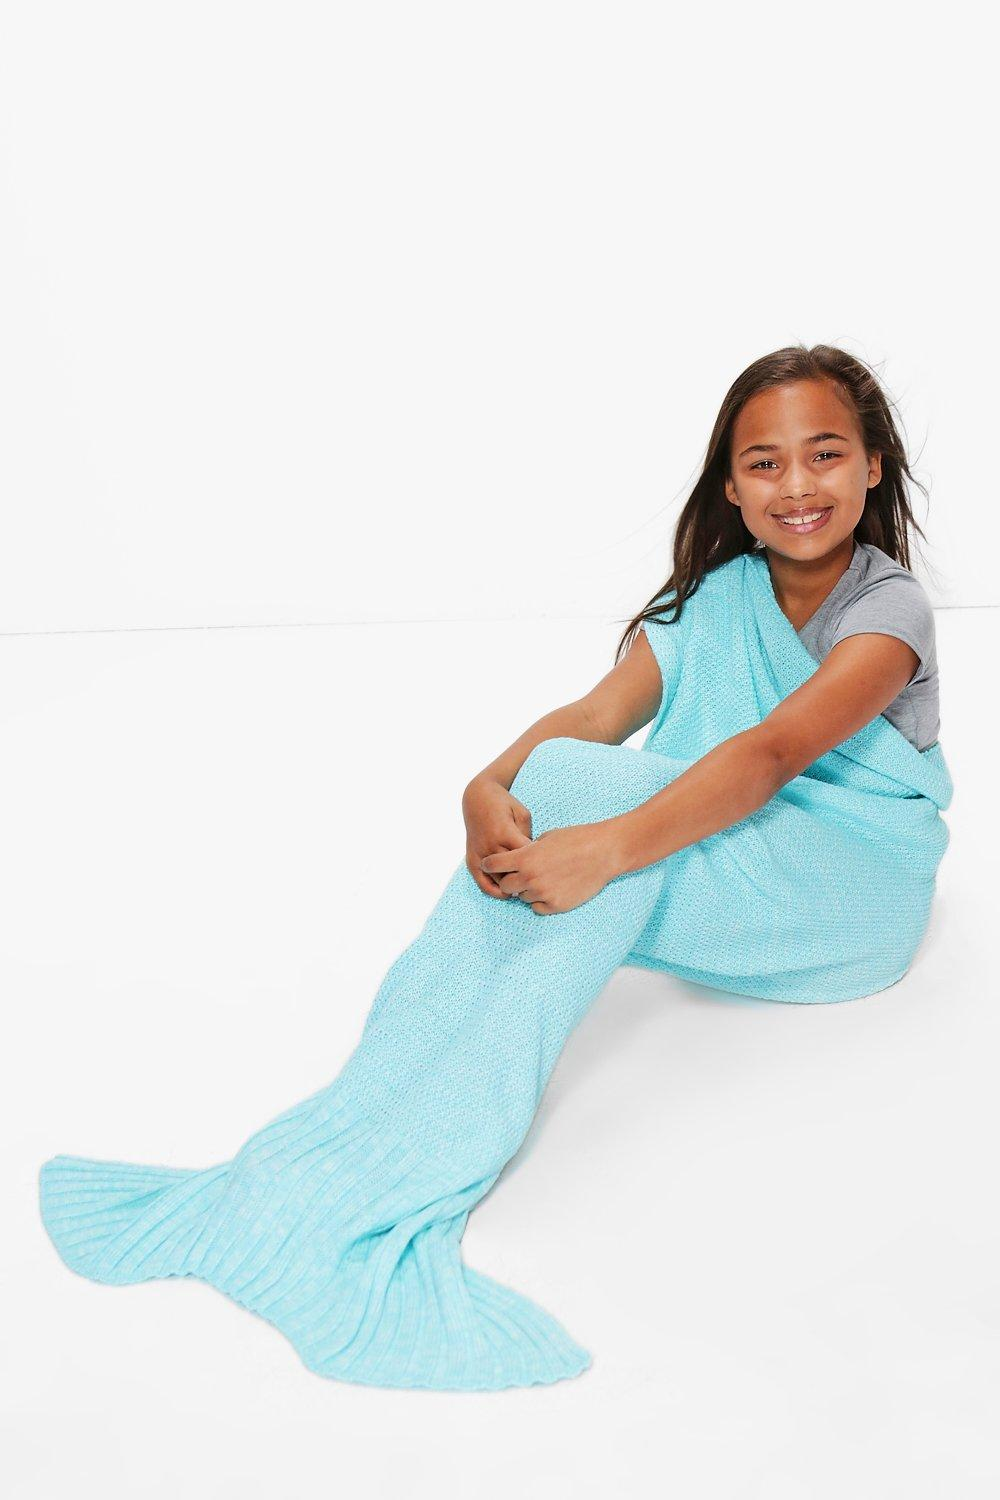 Mermaid Tail Blanket - turquoise - Girls Mermaid T